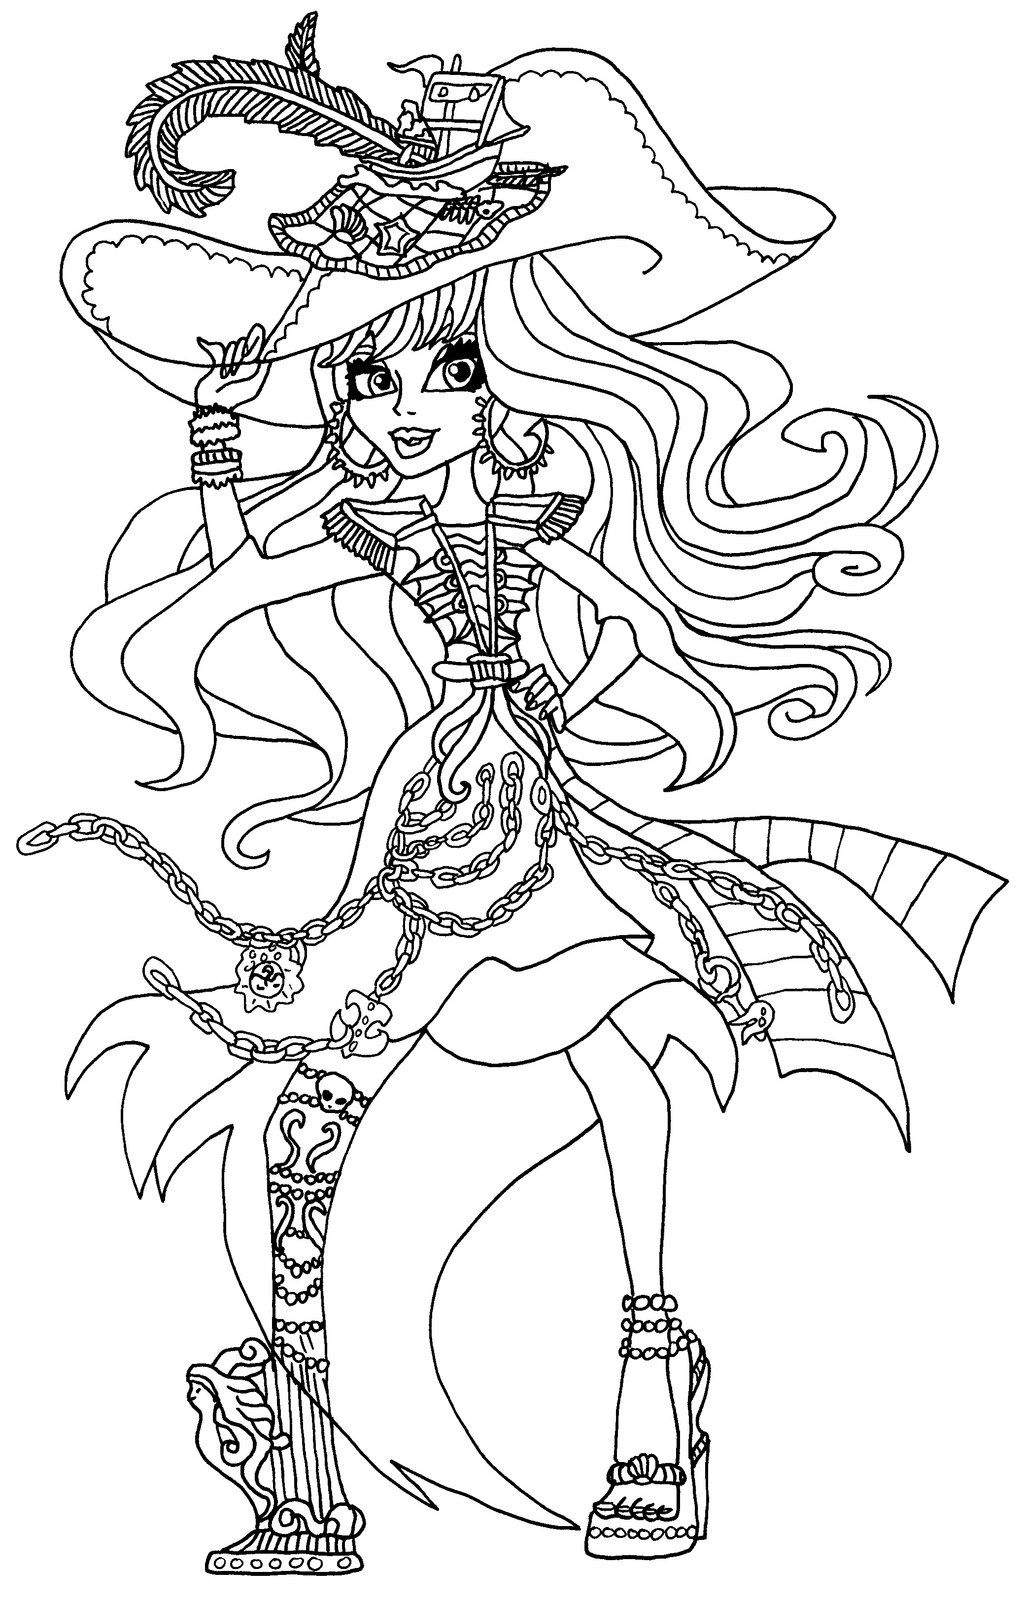 Pin By Feezah Salam On Coloring Pages To Print In 2020 With